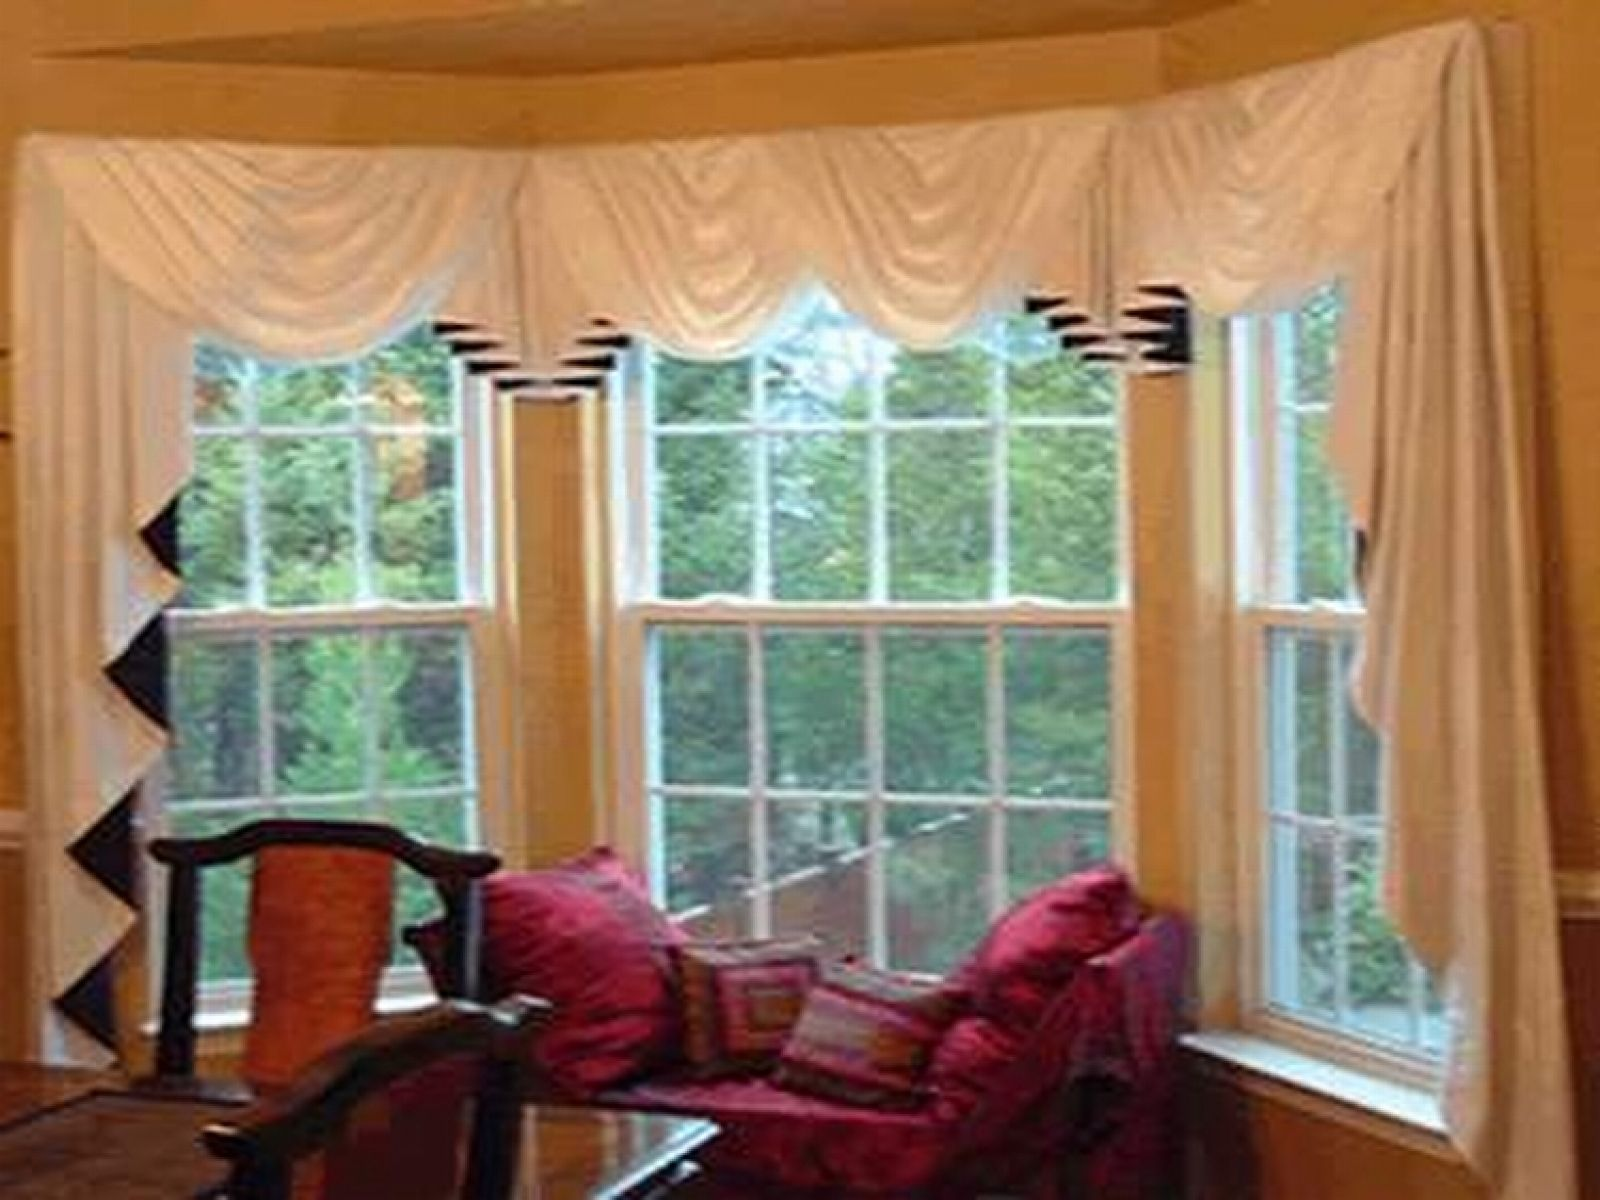 Curtain valances for windows and rods - Curtain Rods For Bay Windows Australia And Cafe Curtain Rods For Bay Windows